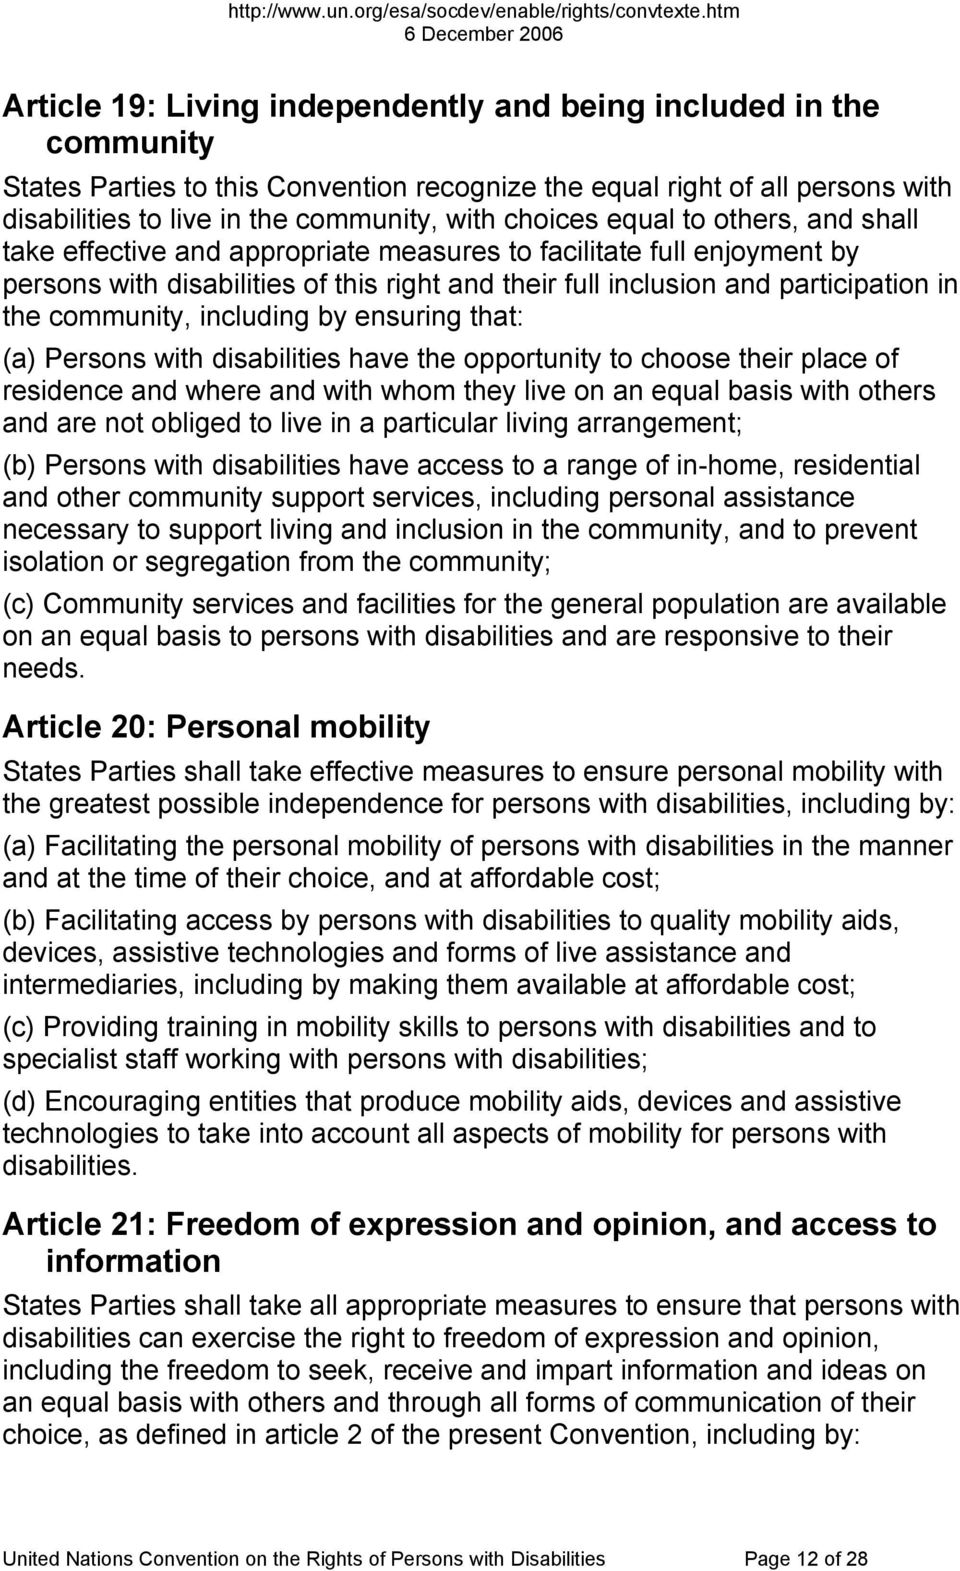 community, including by ensuring that: (a) Persons with disabilities have the opportunity to choose their place of residence and where and with whom they live on an equal basis with others and are